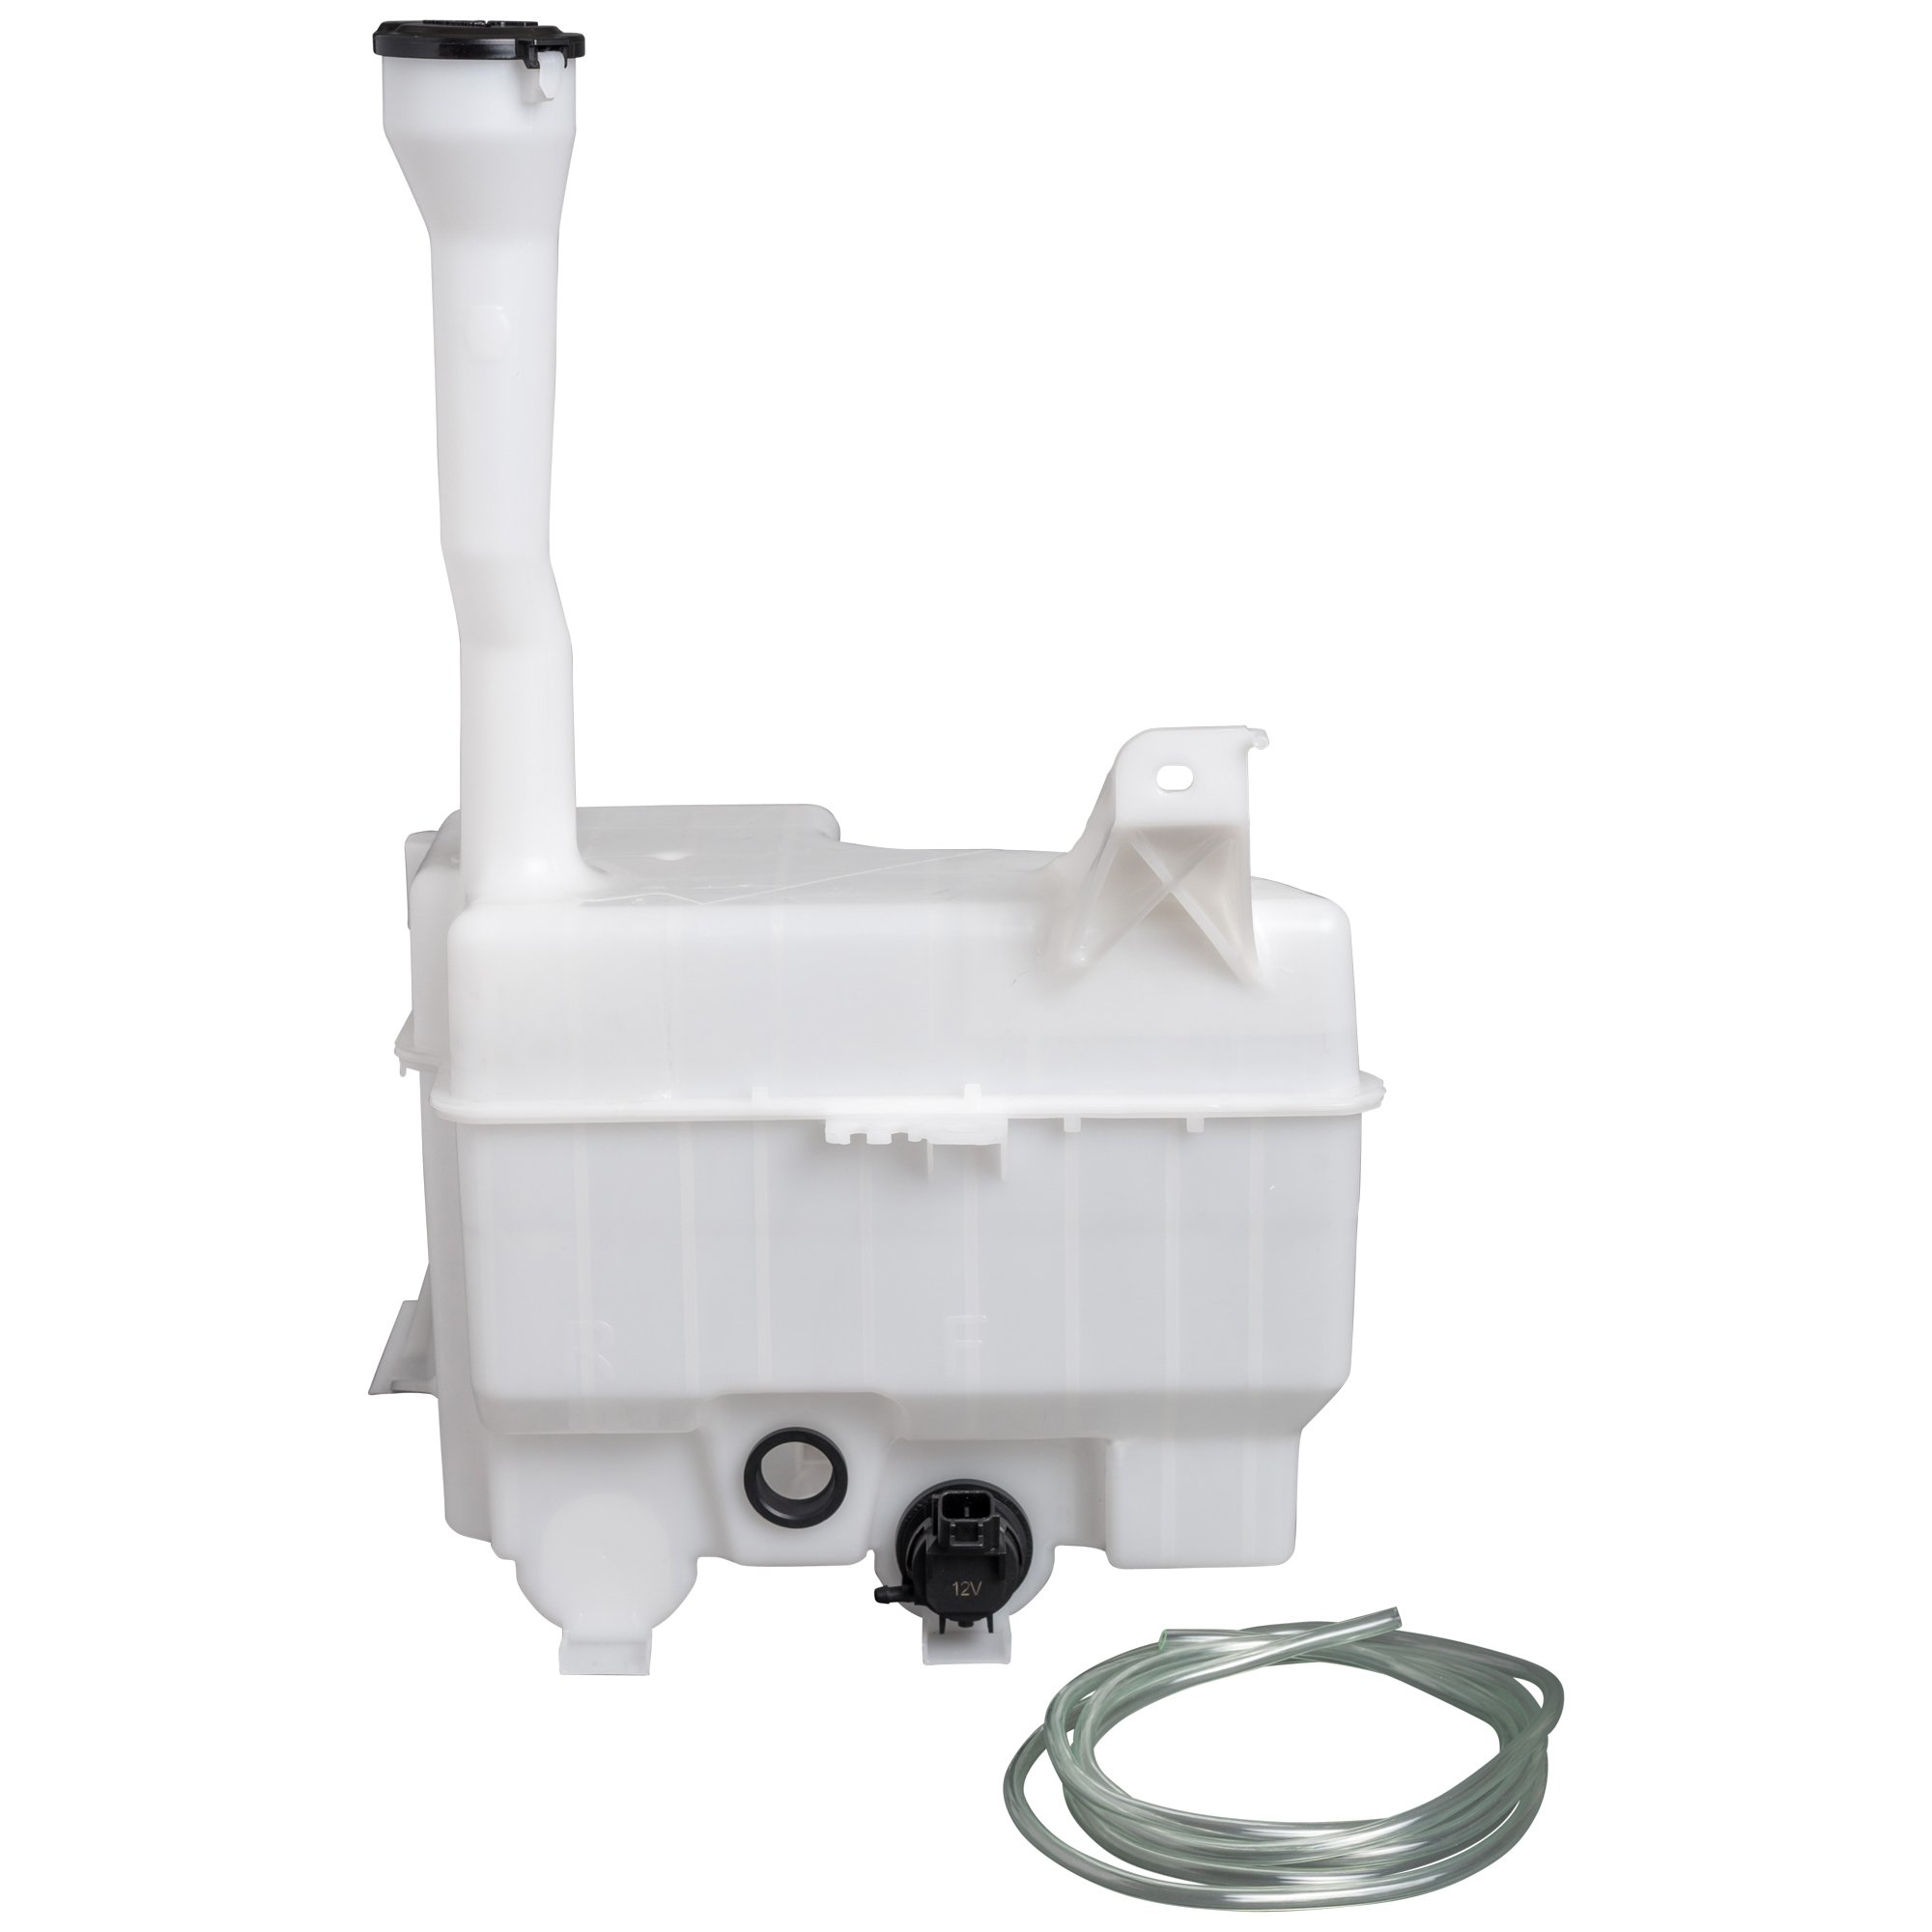 Windshield Washer Reservoir w/Pump For 2012-2015 Toyota Avalon Camry Hybrid fits TO1288171 / 85315-06220/8531506220 by Parts Galaxy